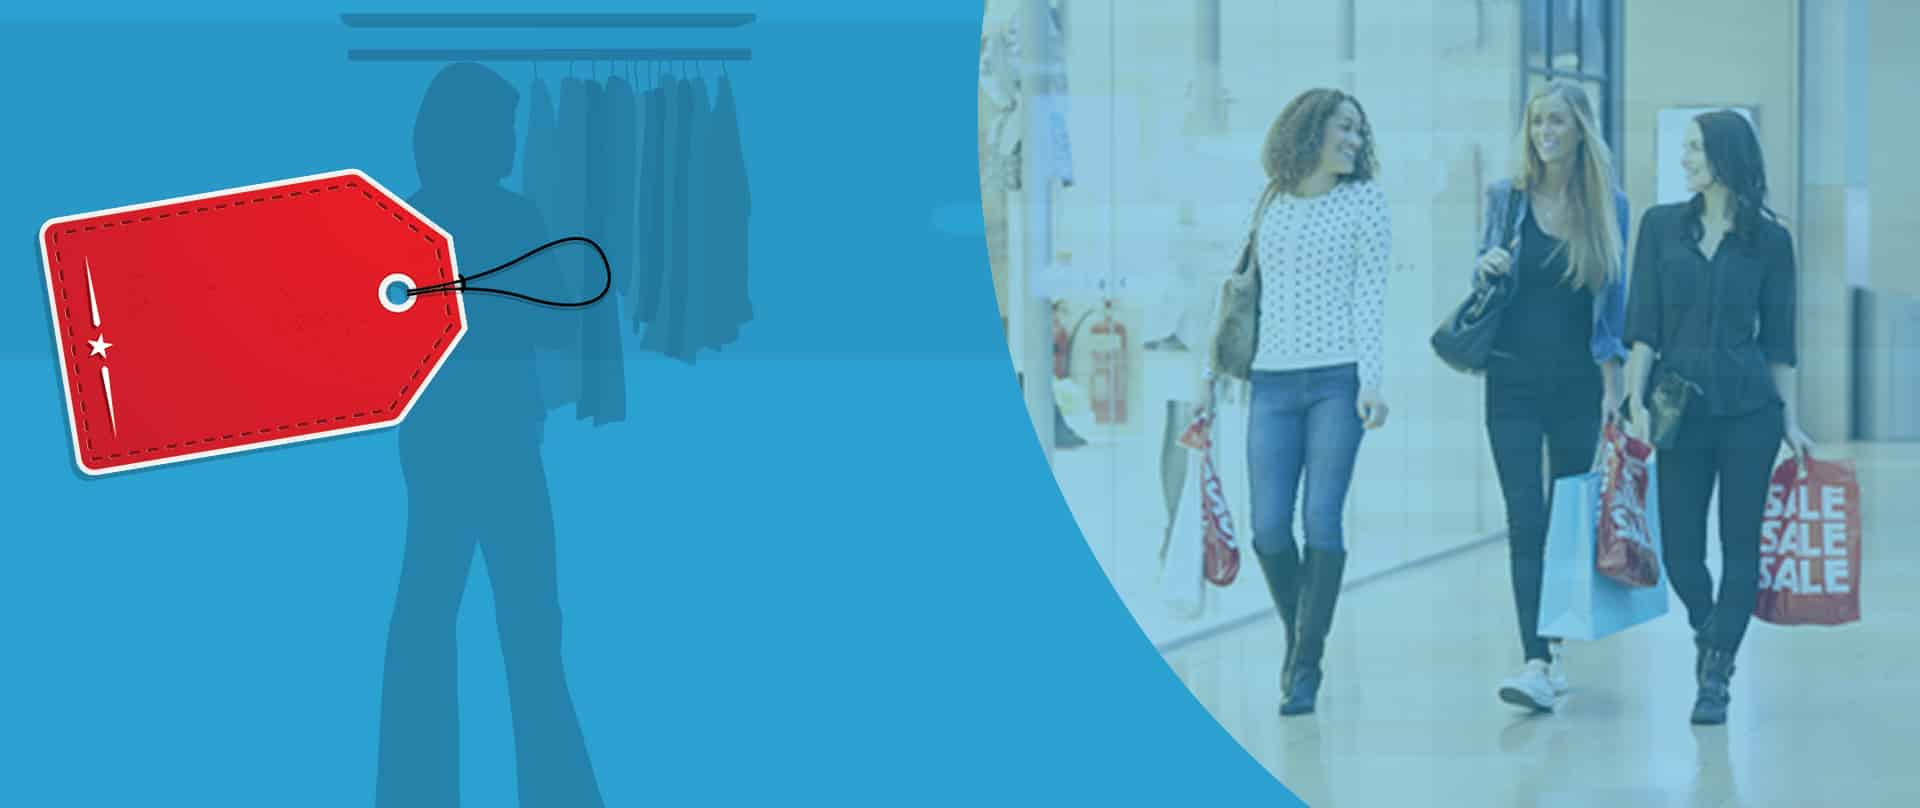 How Do You Build A Successful RETAIL Business?